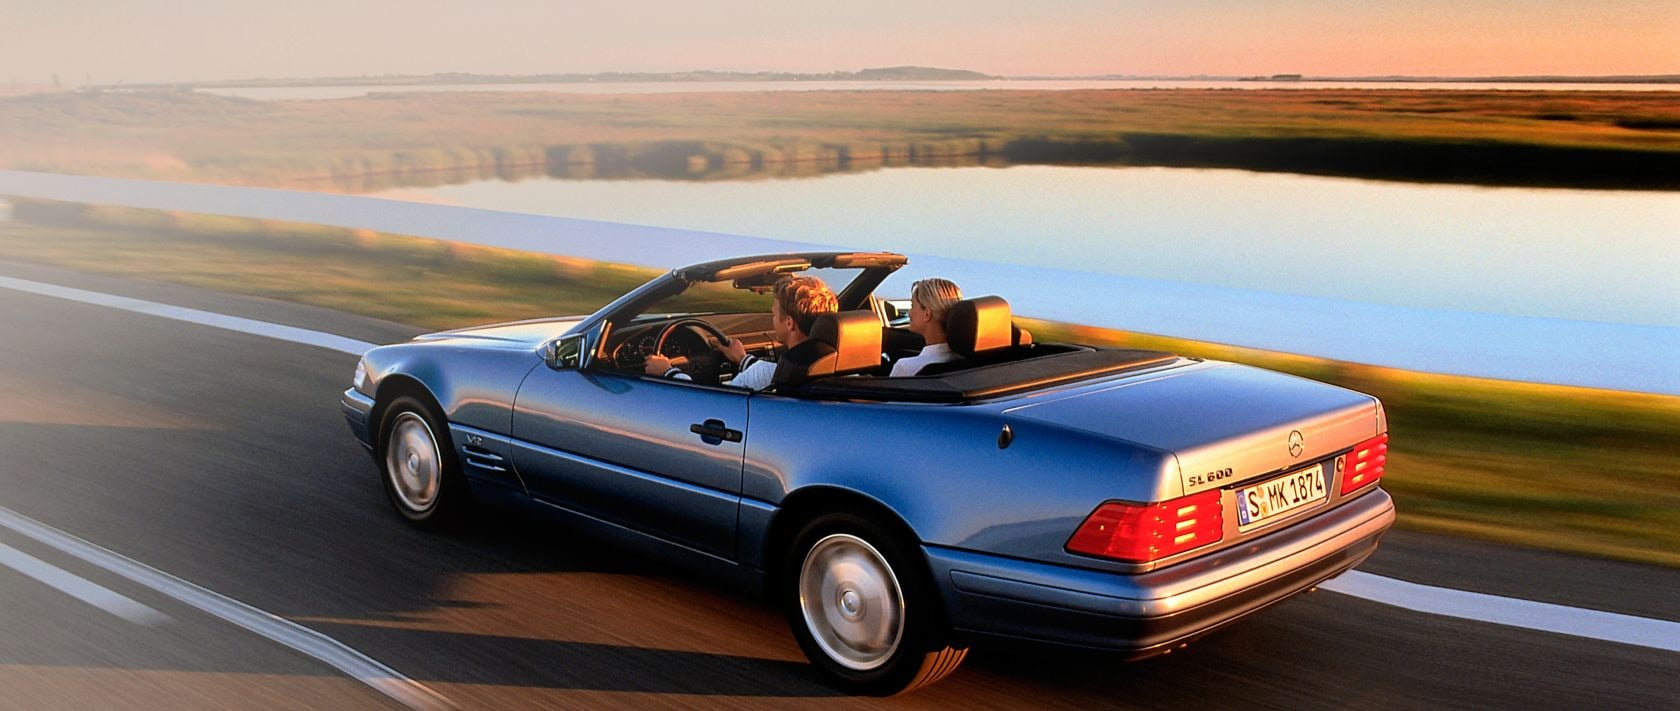 The Mercedes-Benz SL R 129 celebrated its premiere 30 years ago.